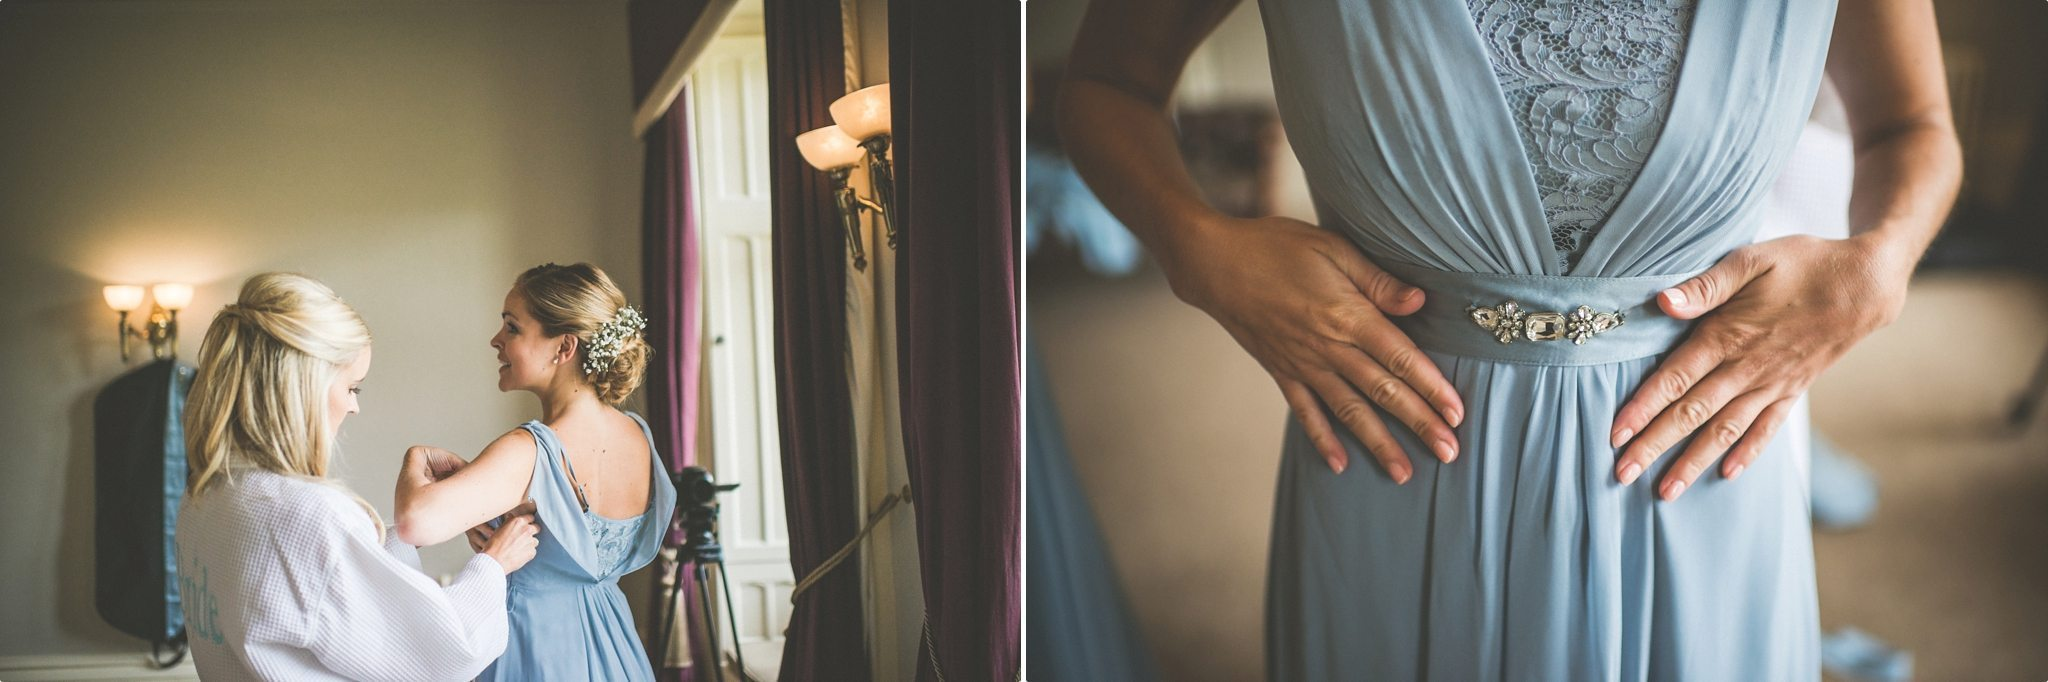 st-audries-park-wedding-maria-assia-photography-183